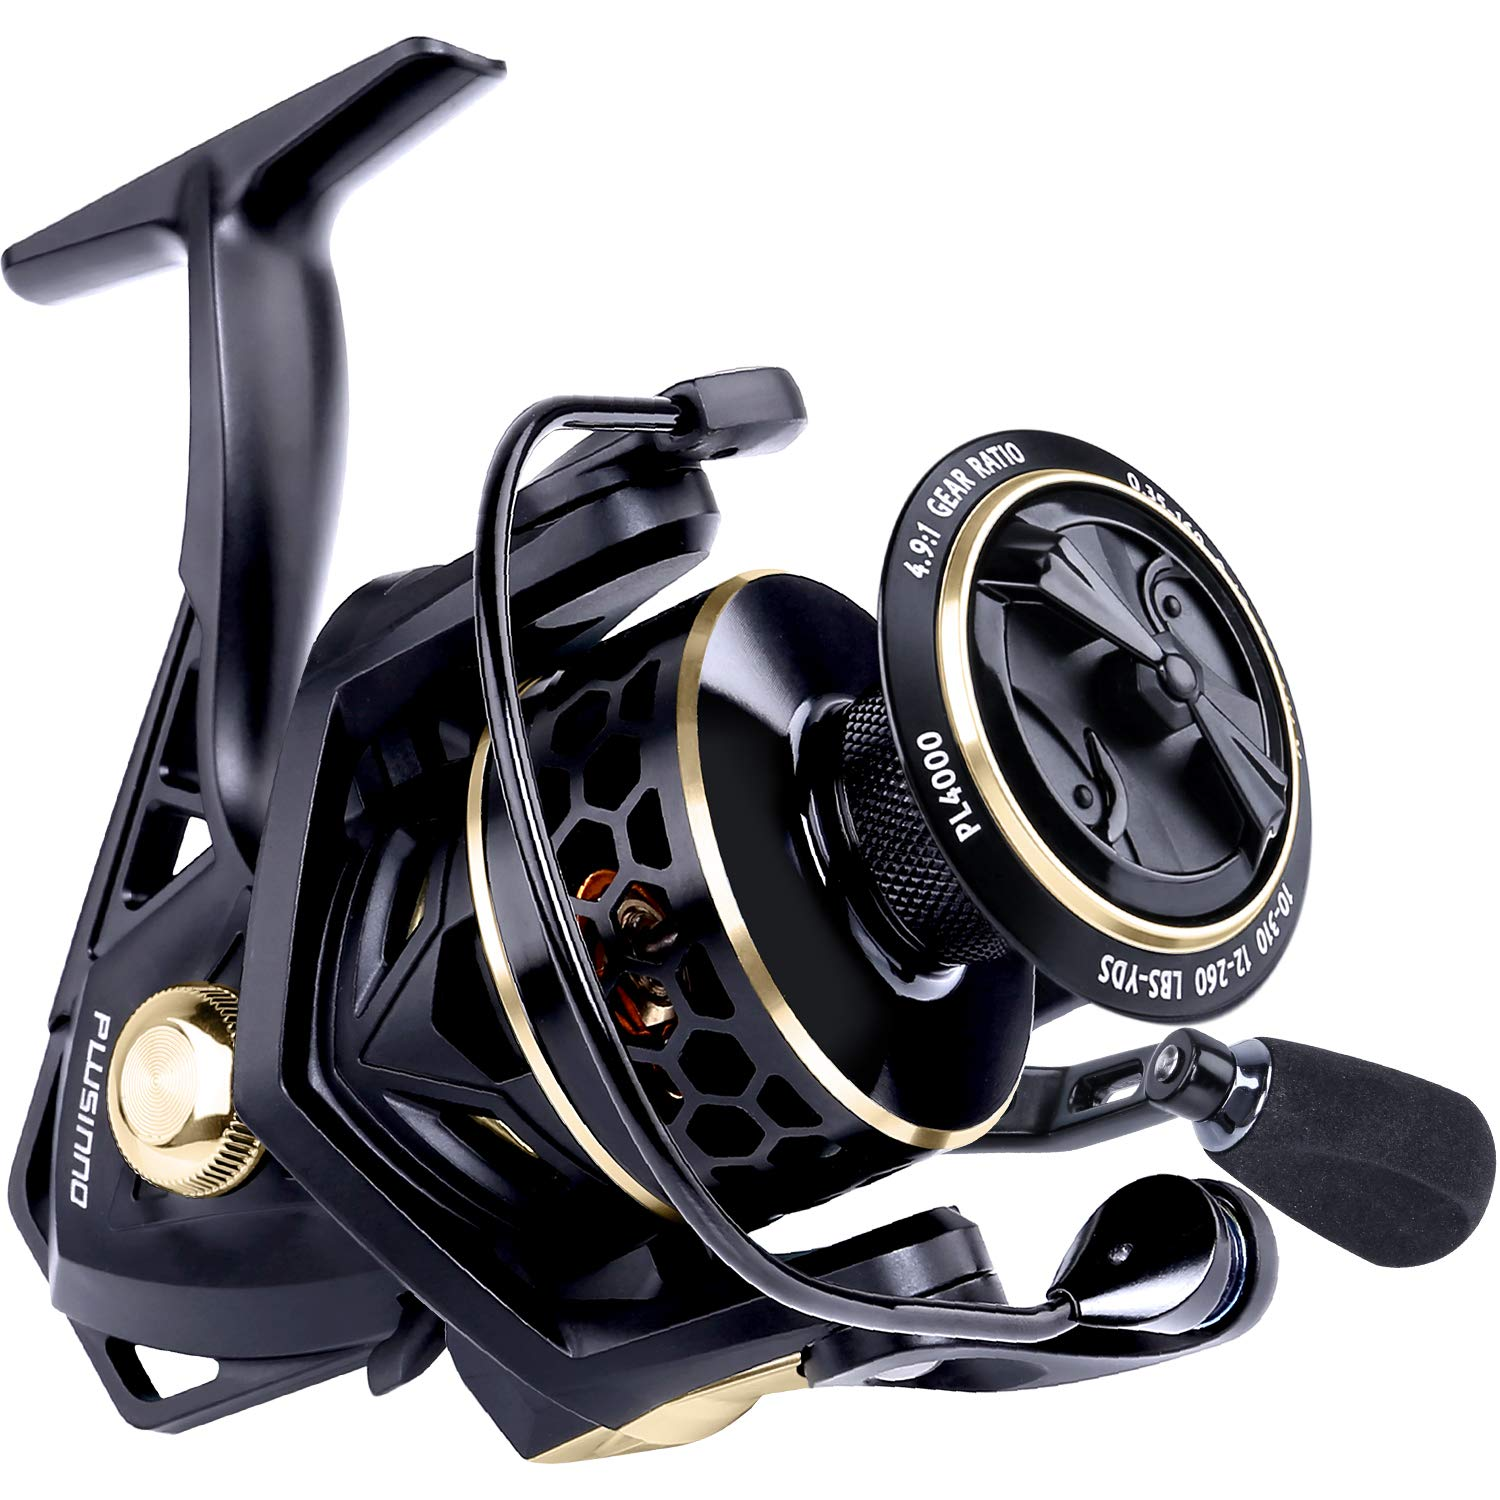 PLUSINNO Fishing Reel, 9 1BB Spinning Reel, Ultra Smooth Powerful, Lightweight Graphite Frame, CNC Aluminum Spool for Saltwater Freshwater